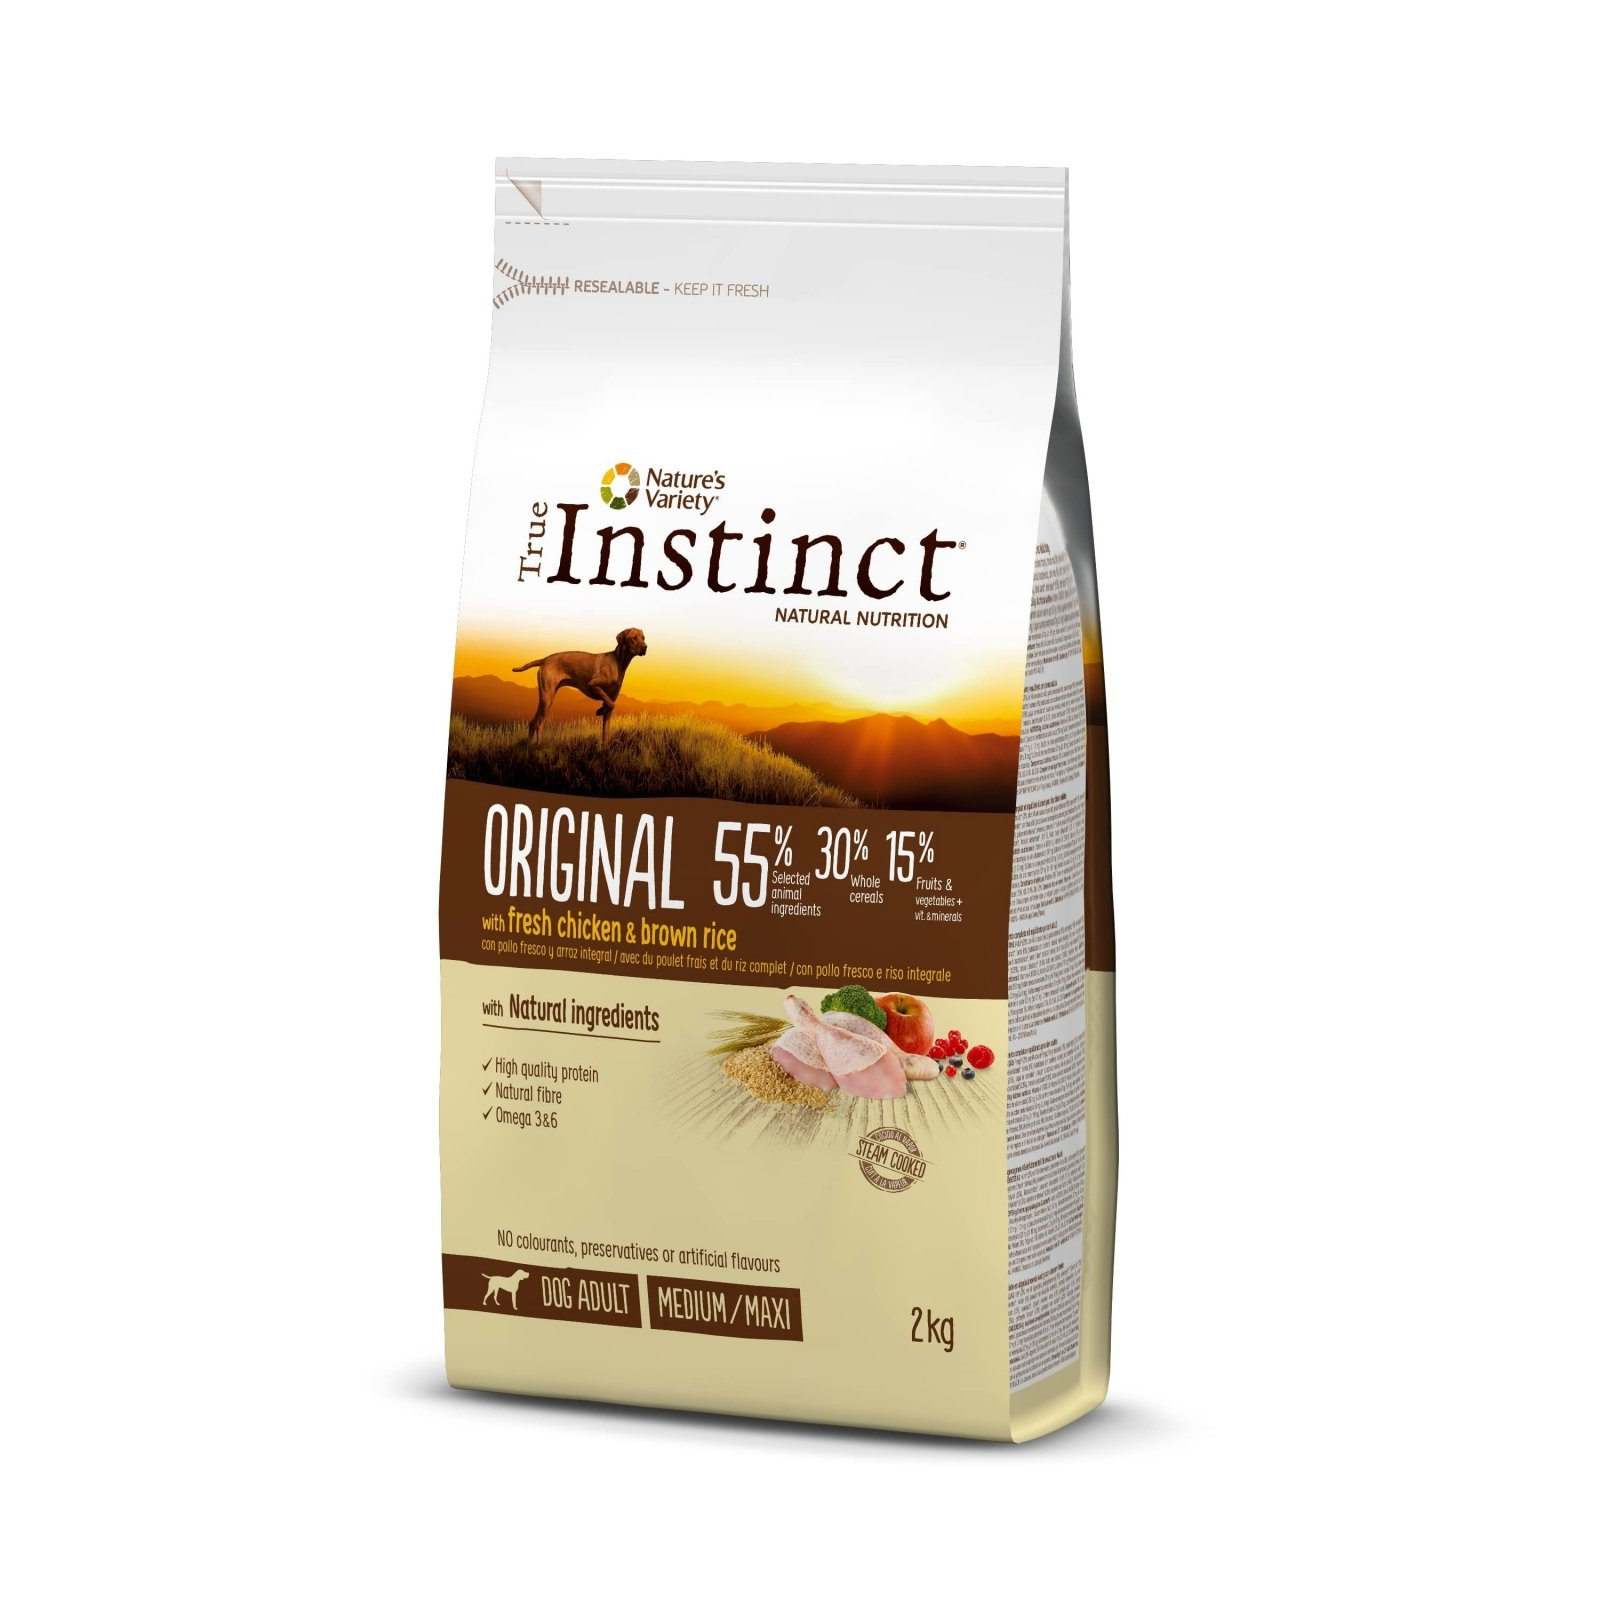 True Instinct Dog Original Med-Maxi Adult cu Pui, 2 kg